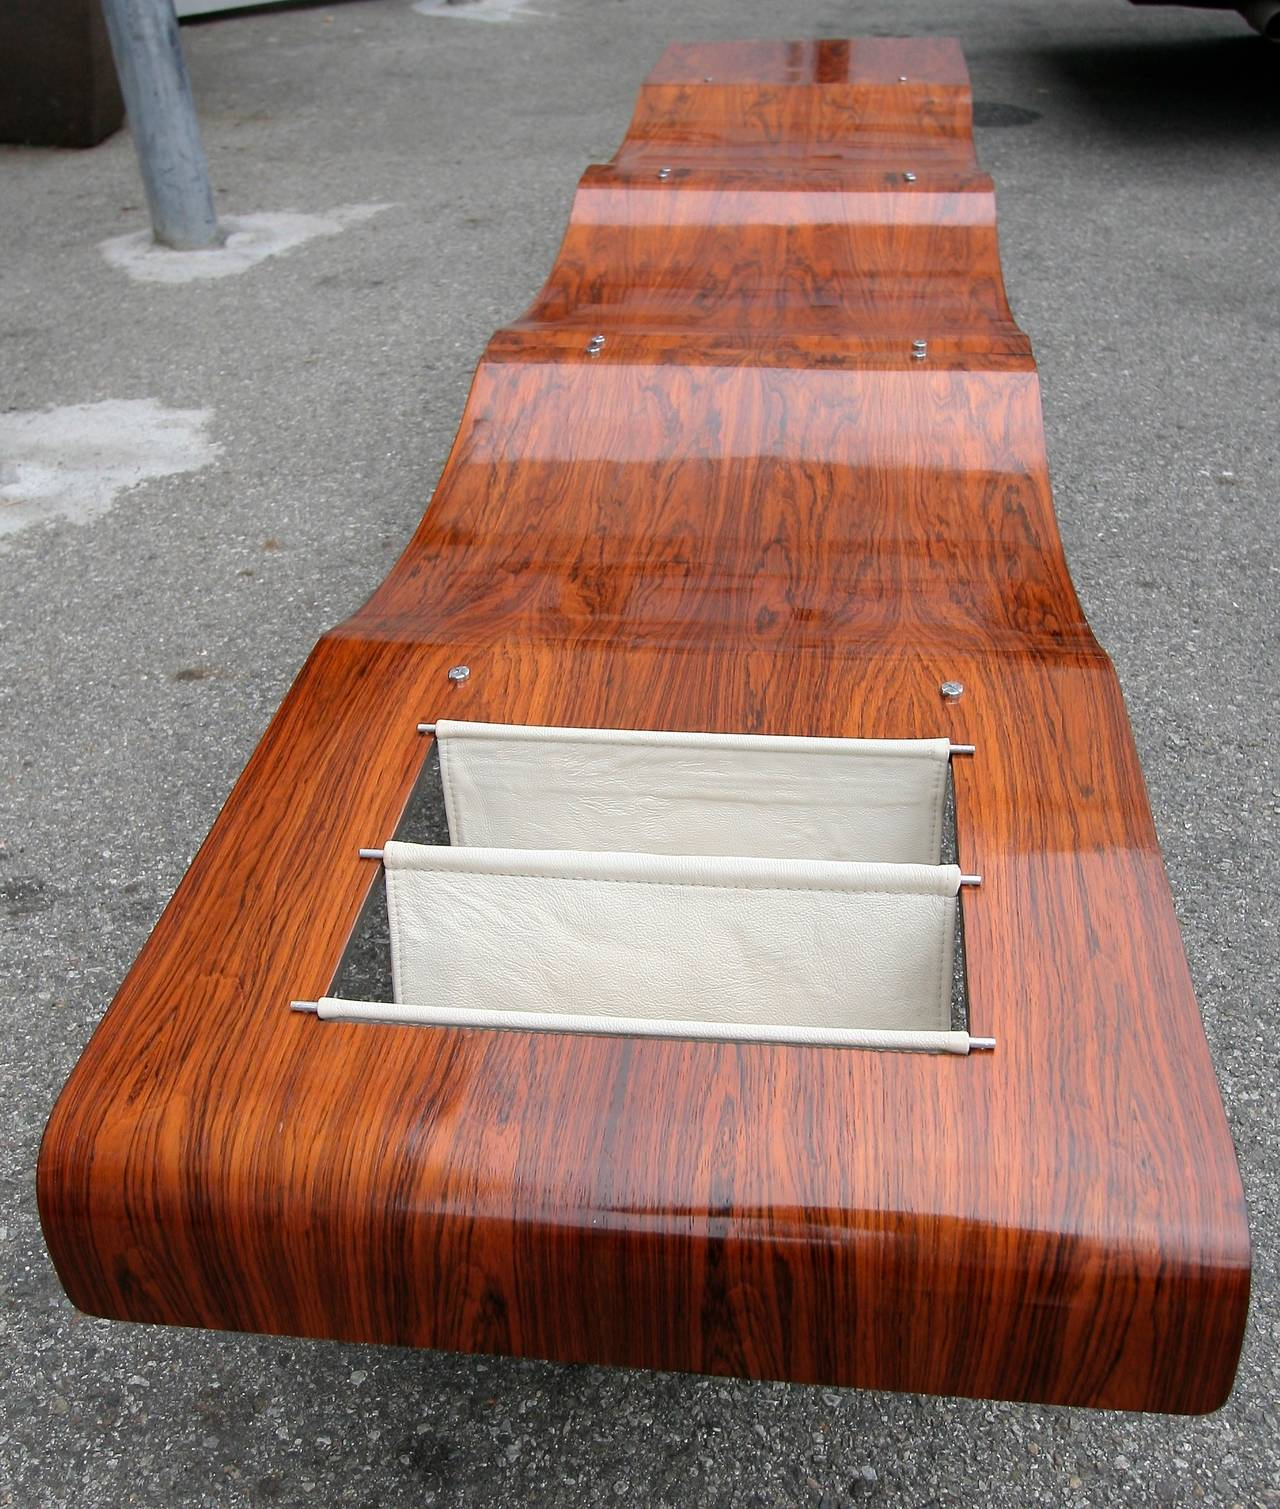 1960s Onda Bench by Jorge Zalszupin In Excellent Condition For Sale In Los Angeles, CA